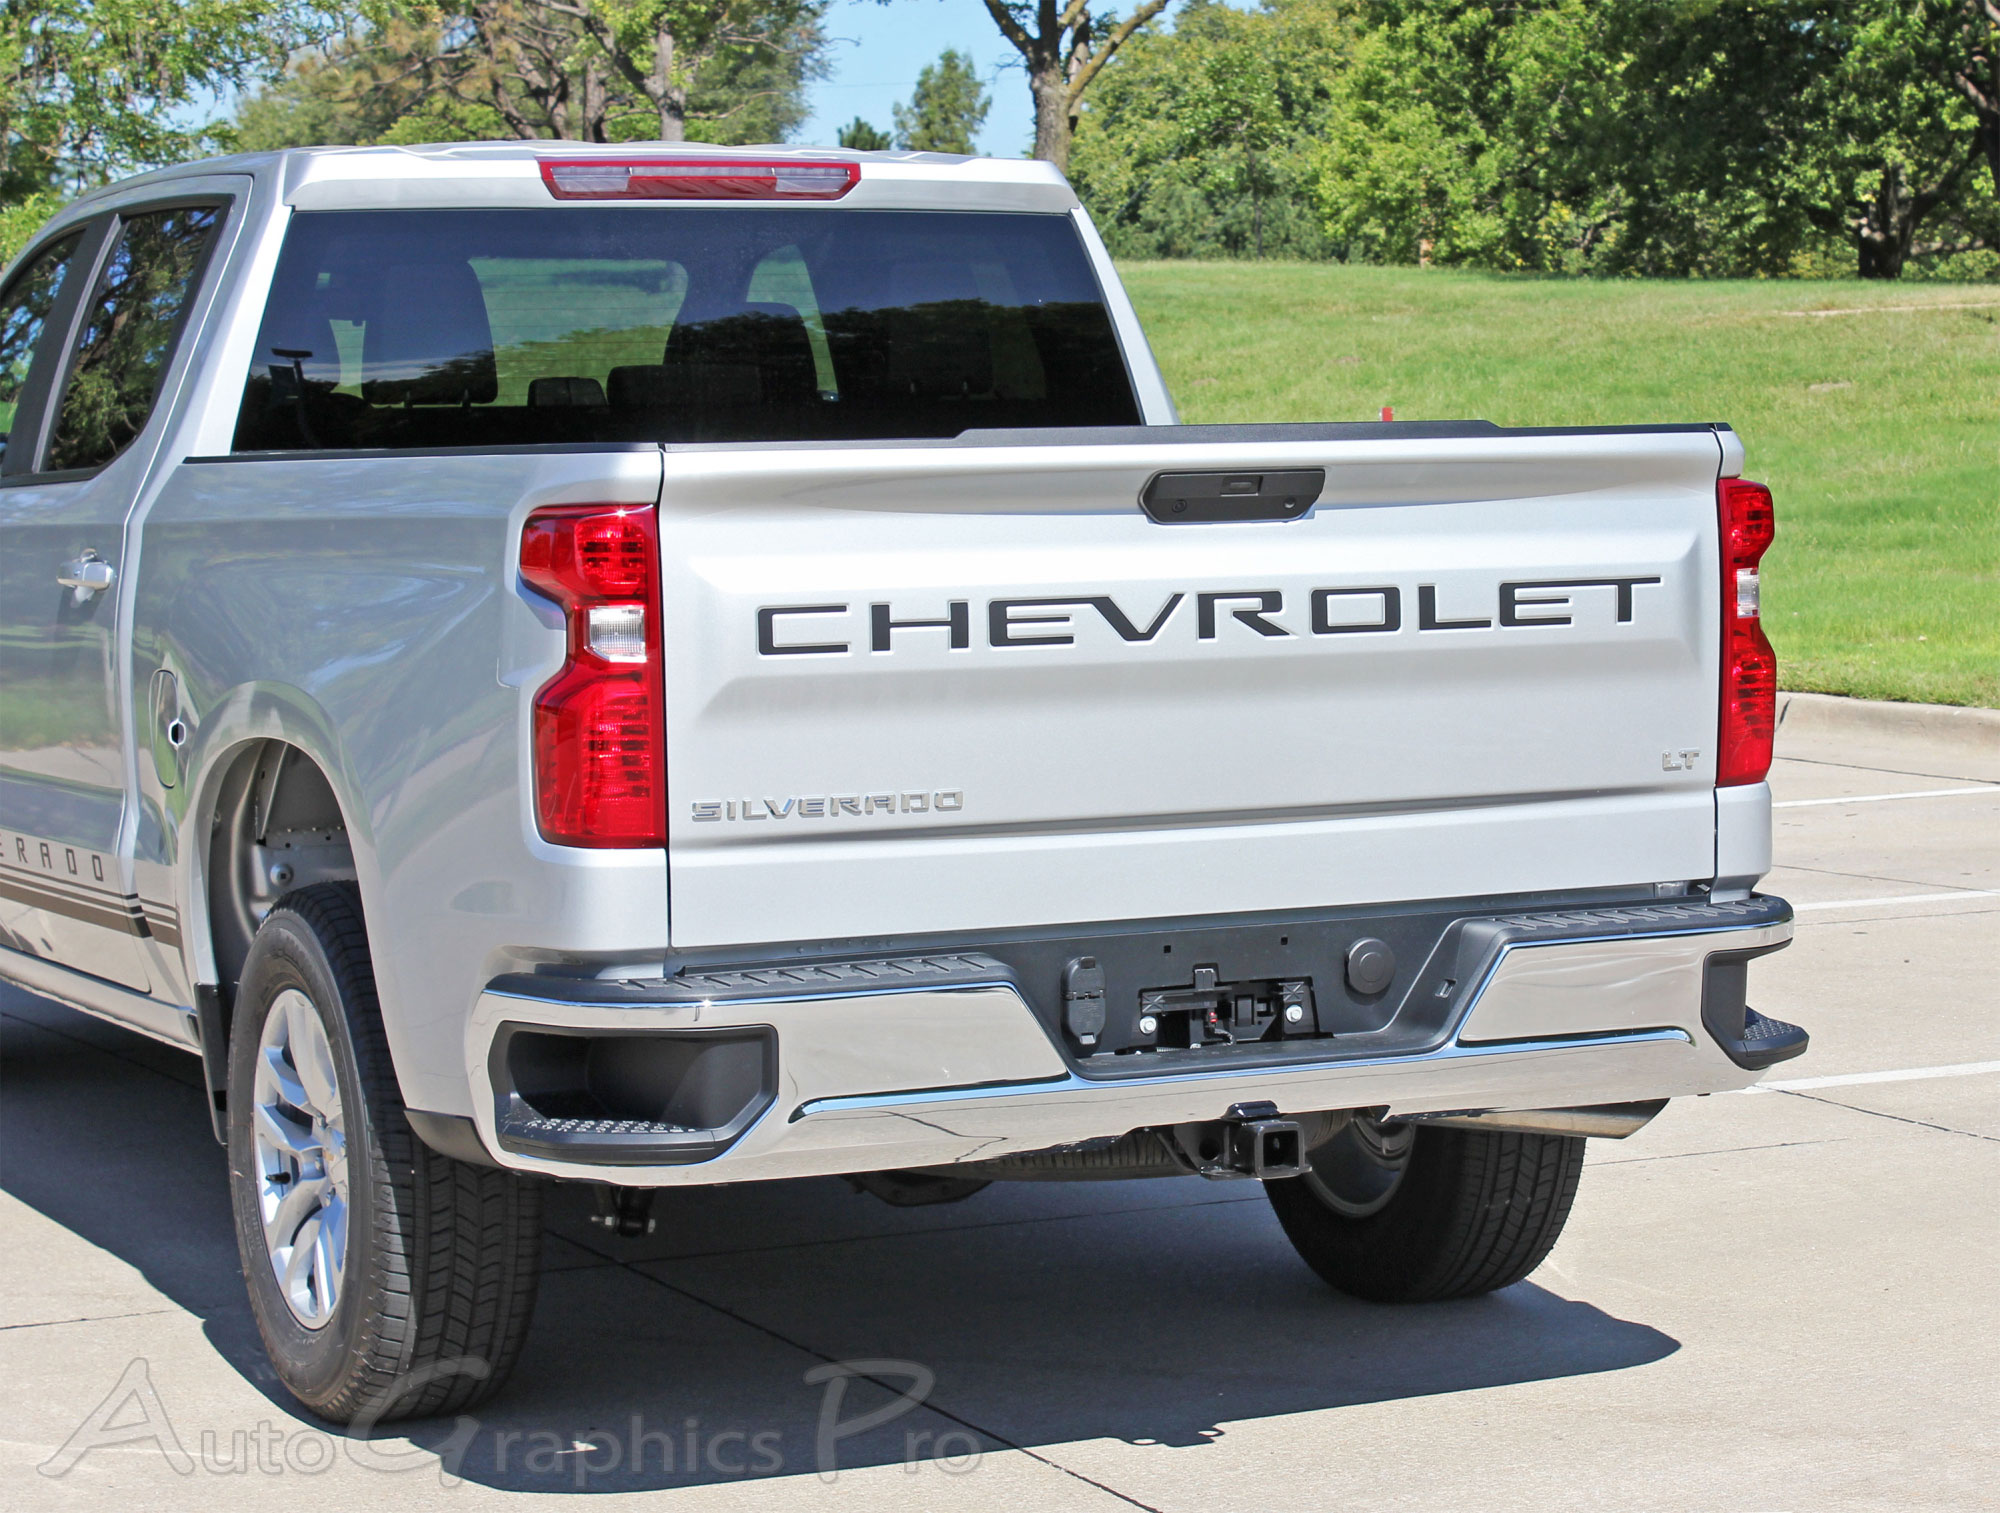 2019 Chevy Silverado Tailgate Letters Name Insert Decals 3M Vinyl Graphics  Kit